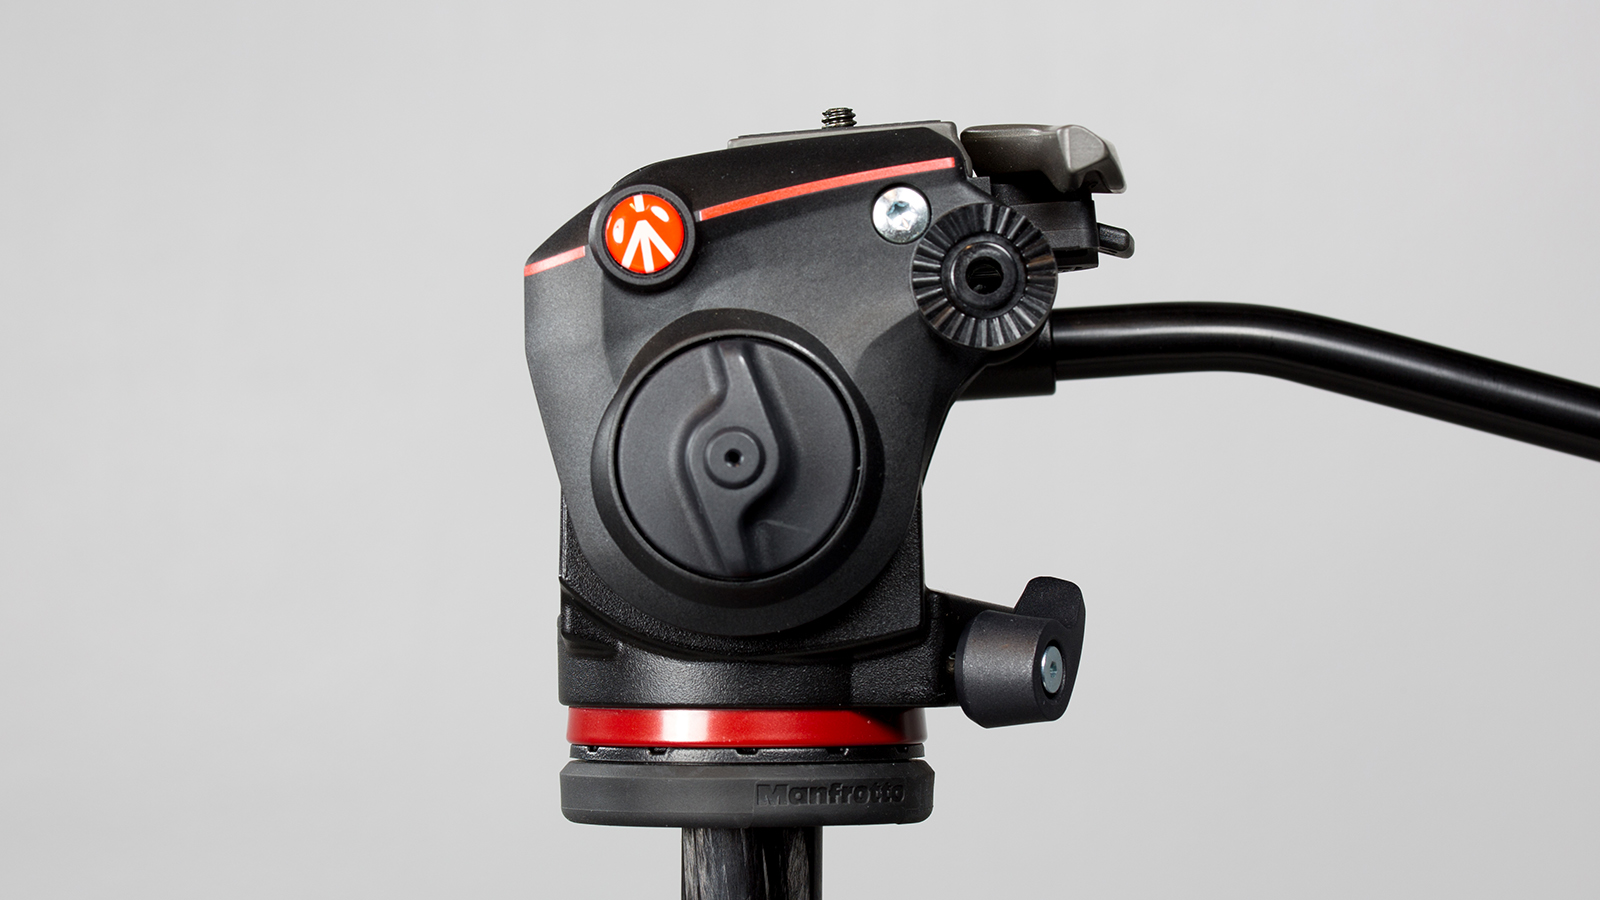 Manfrotto-MHXPRO-2W-DT-005-lukustus